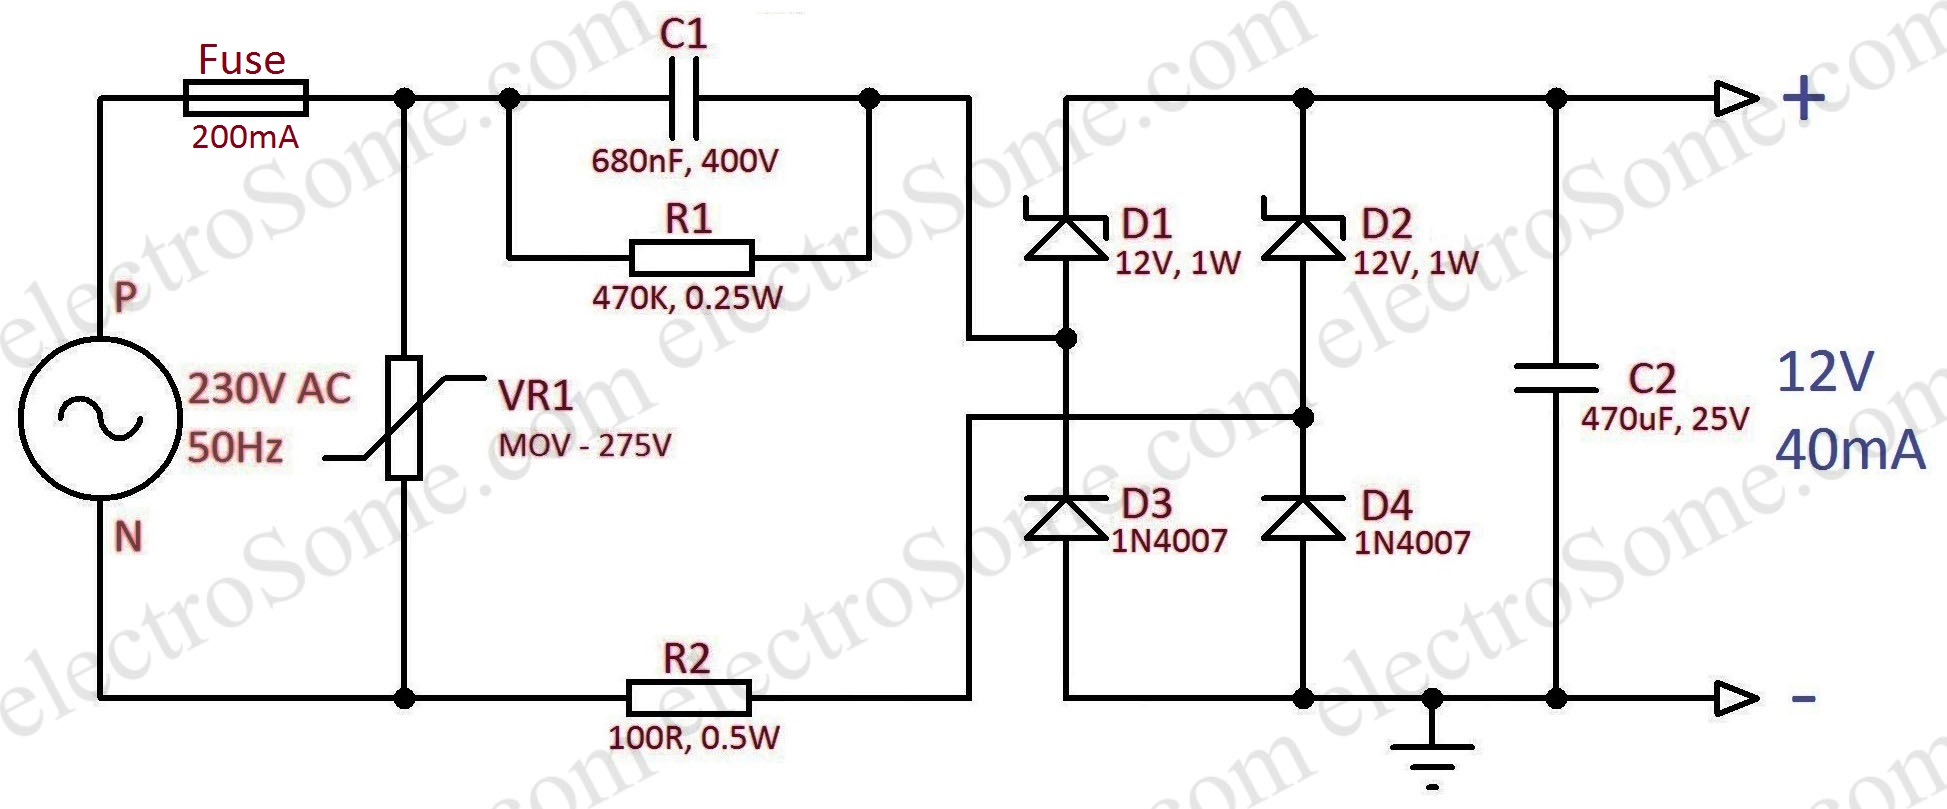 Automatic Night Lamp Using Ldr Voice Warning Circuit Diagram Sensorcircuit Transformerless Capacitor Power Supply 12v 40ma